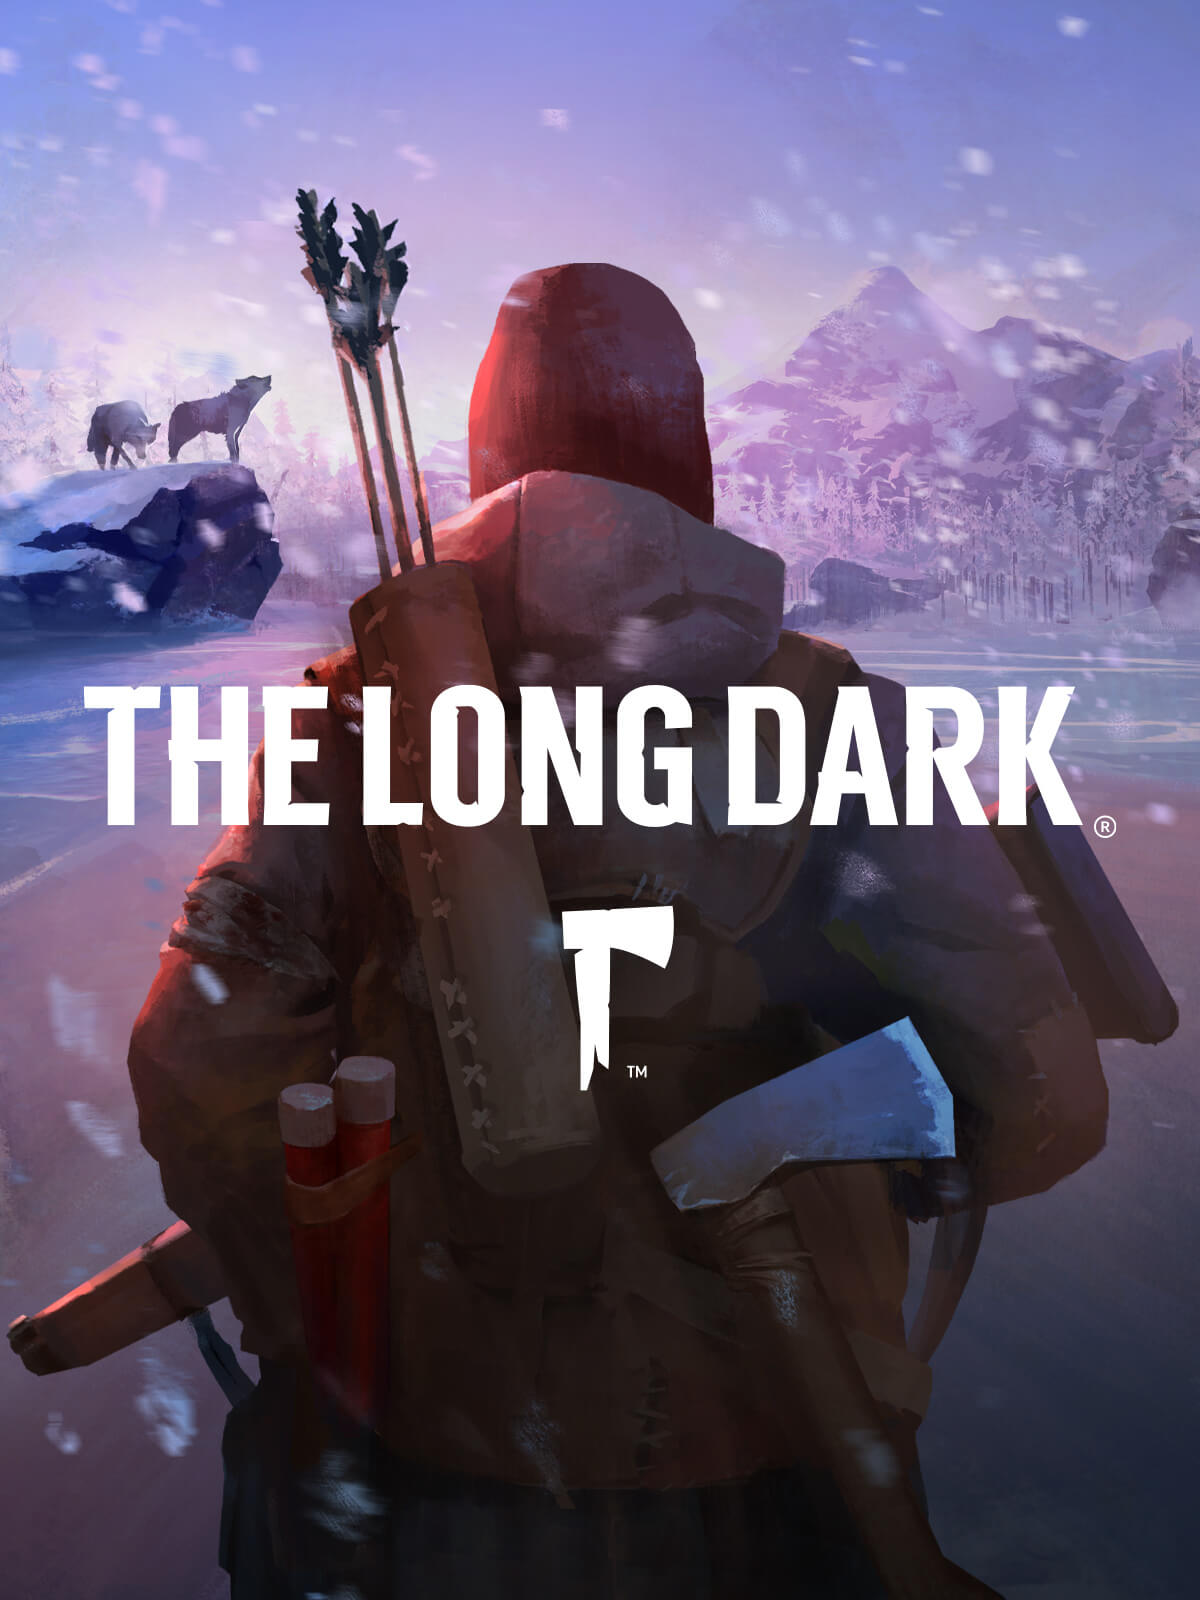 The Long Dark | Download and Buy Today - Epic Games Store